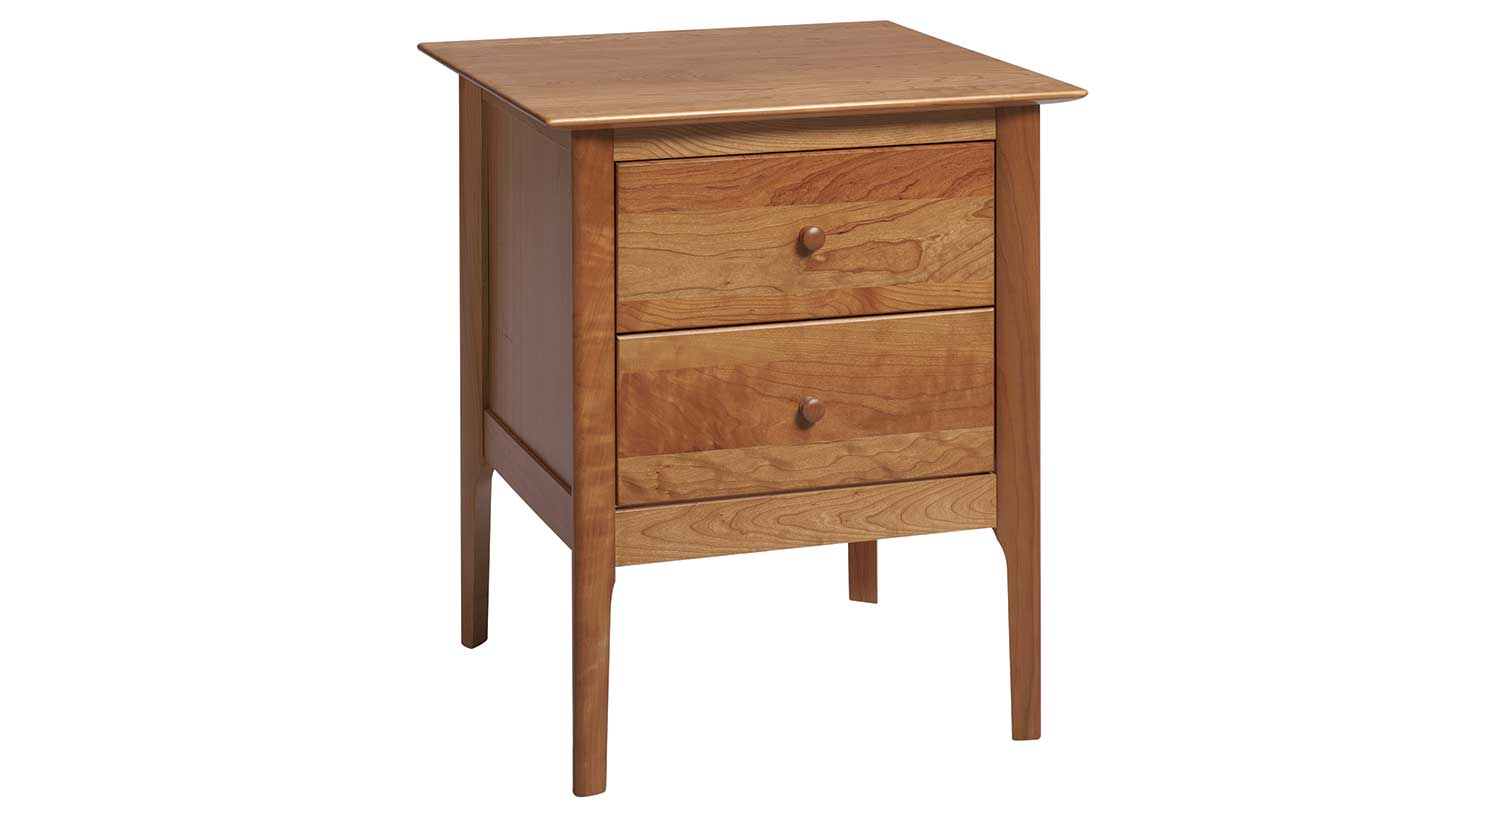 Circle Furniture Sarah Tall Nightstand Solid Nightstands Circle Furniture